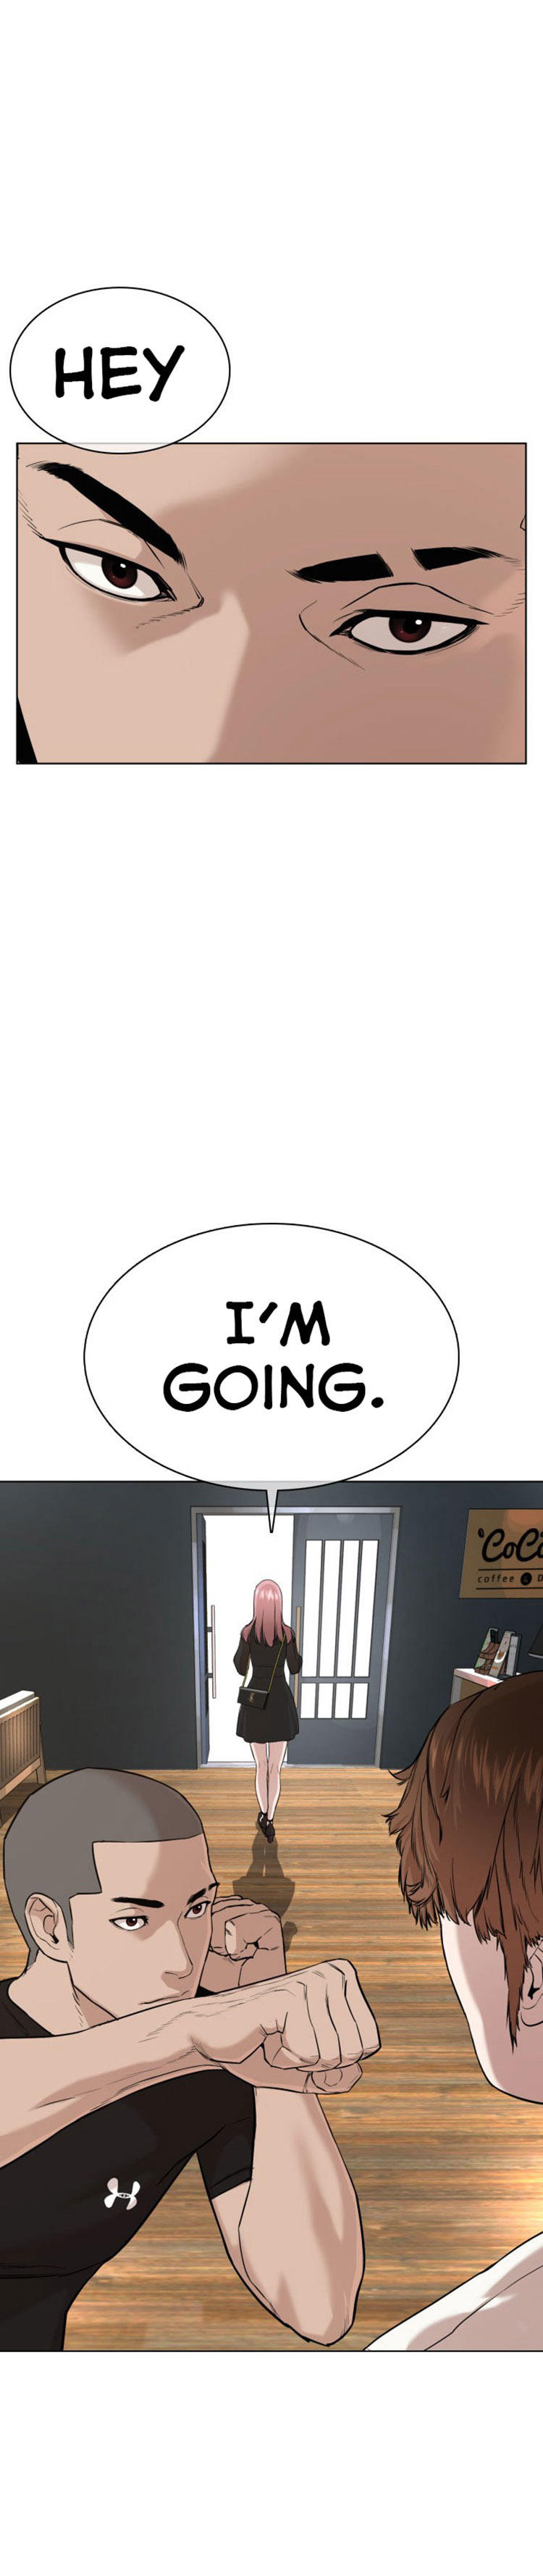 How To Fight Chapter 37: Now Is The Time To Level Up! page 15 - Mangakakalots.com